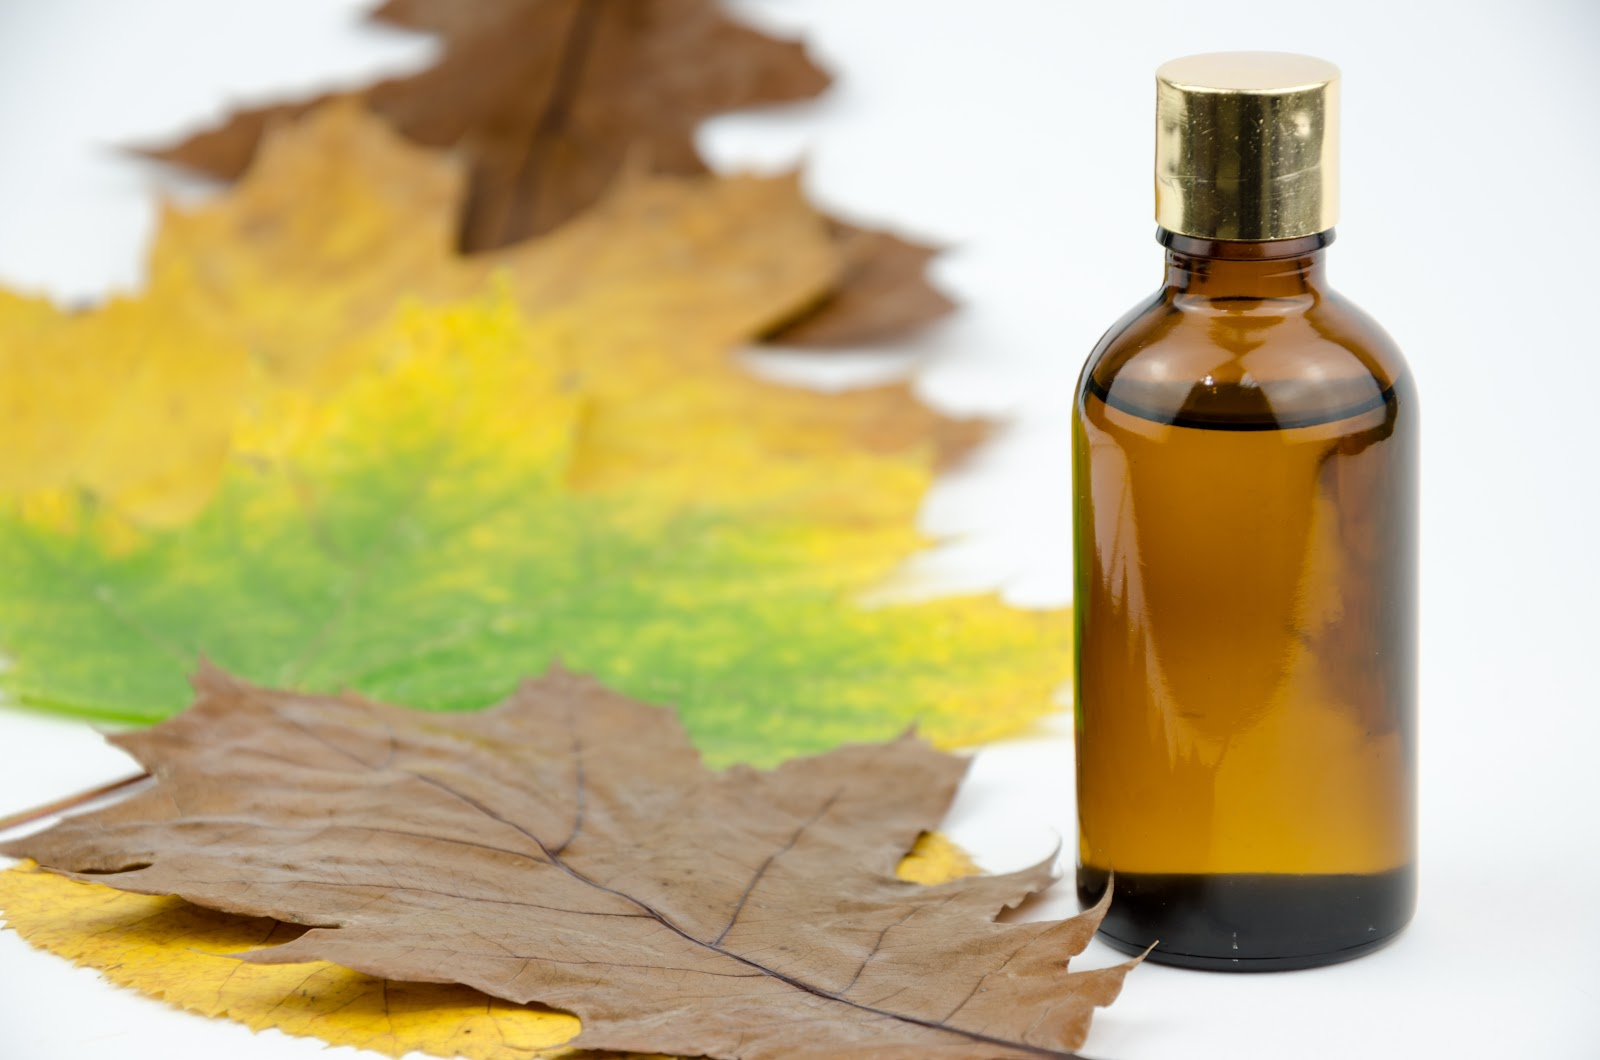 fall leaves next to a perfume bottle